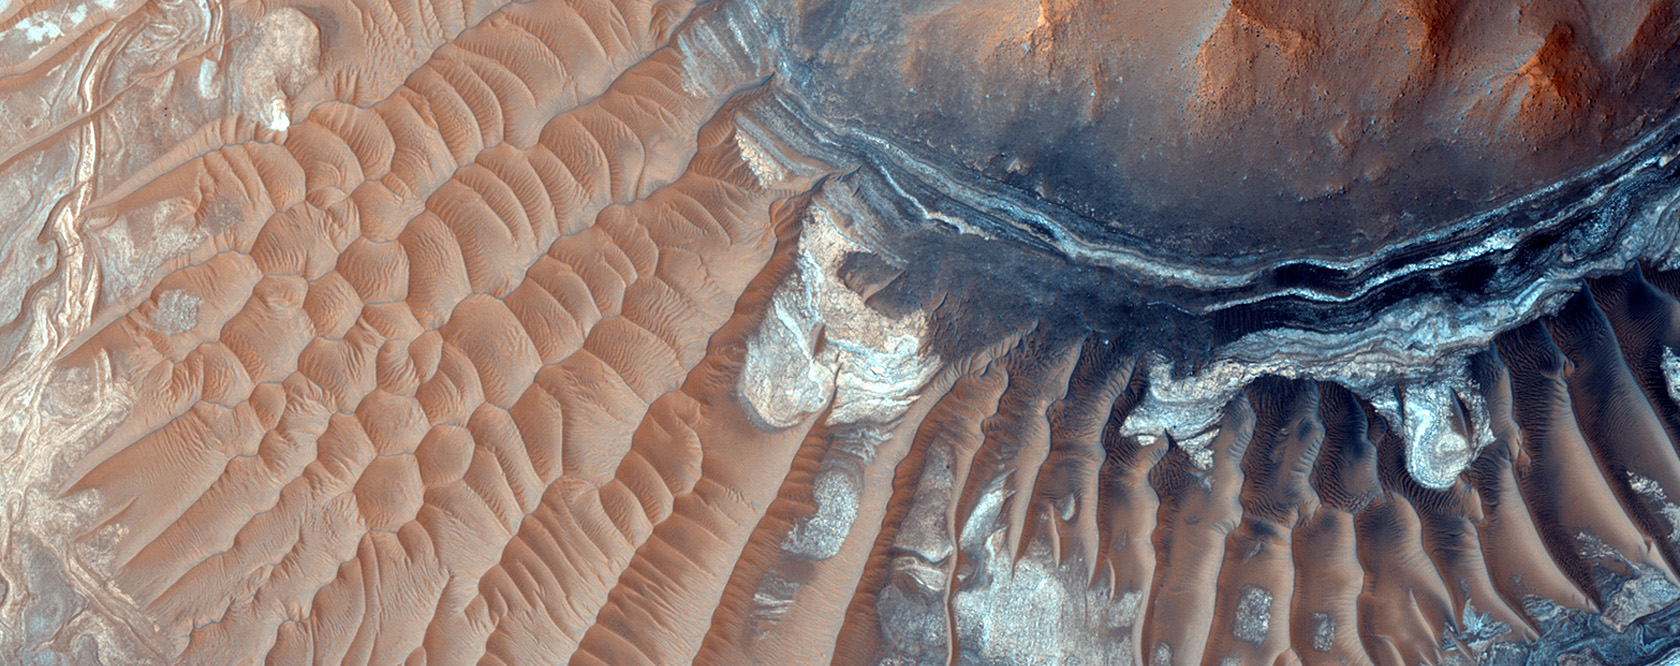 Light-Toned Deposits in Noctis Labyrinthus